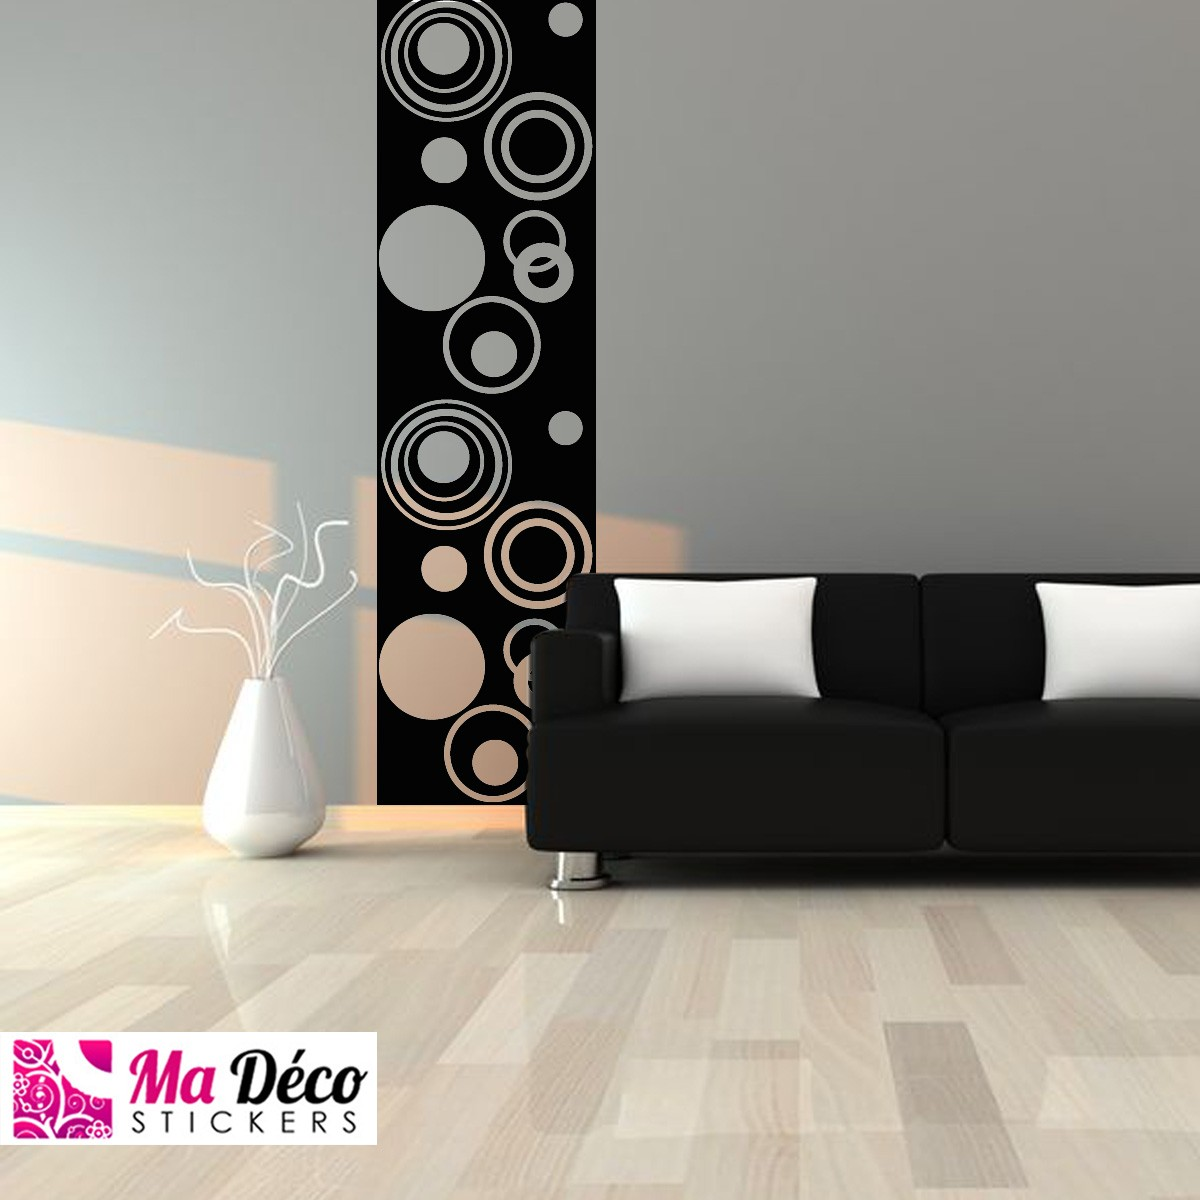 papierpeint9 stickers sur papier peint. Black Bedroom Furniture Sets. Home Design Ideas